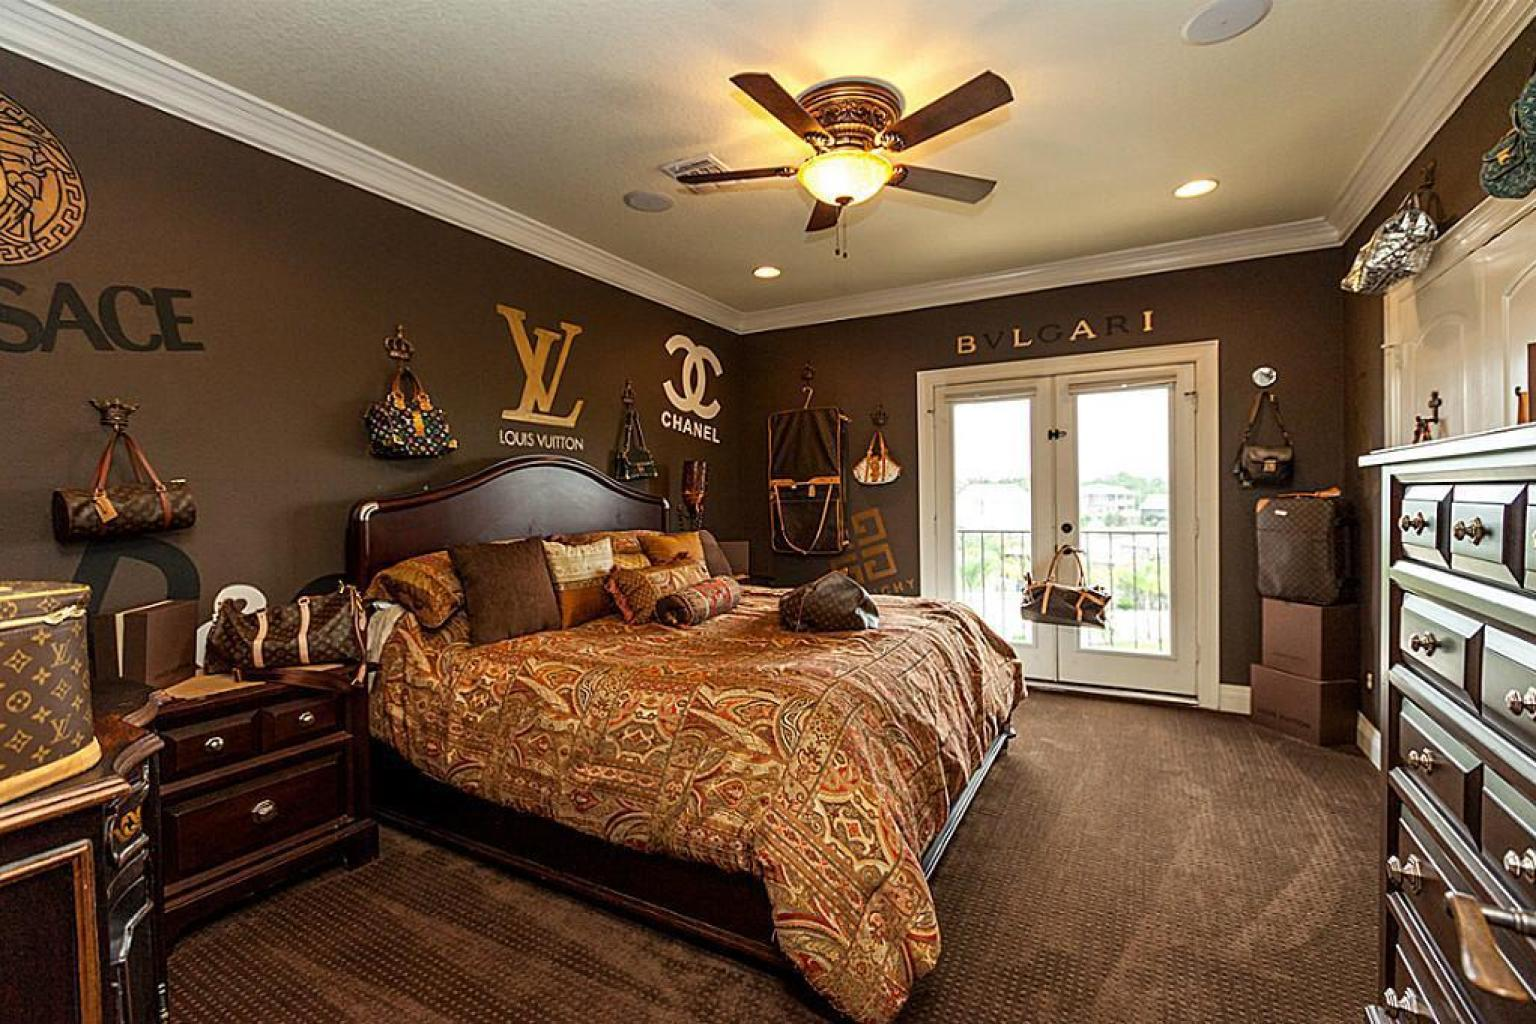 Louis vuitton bedroom in texas home for sale takes fashion for Suhagrat bed decoration design